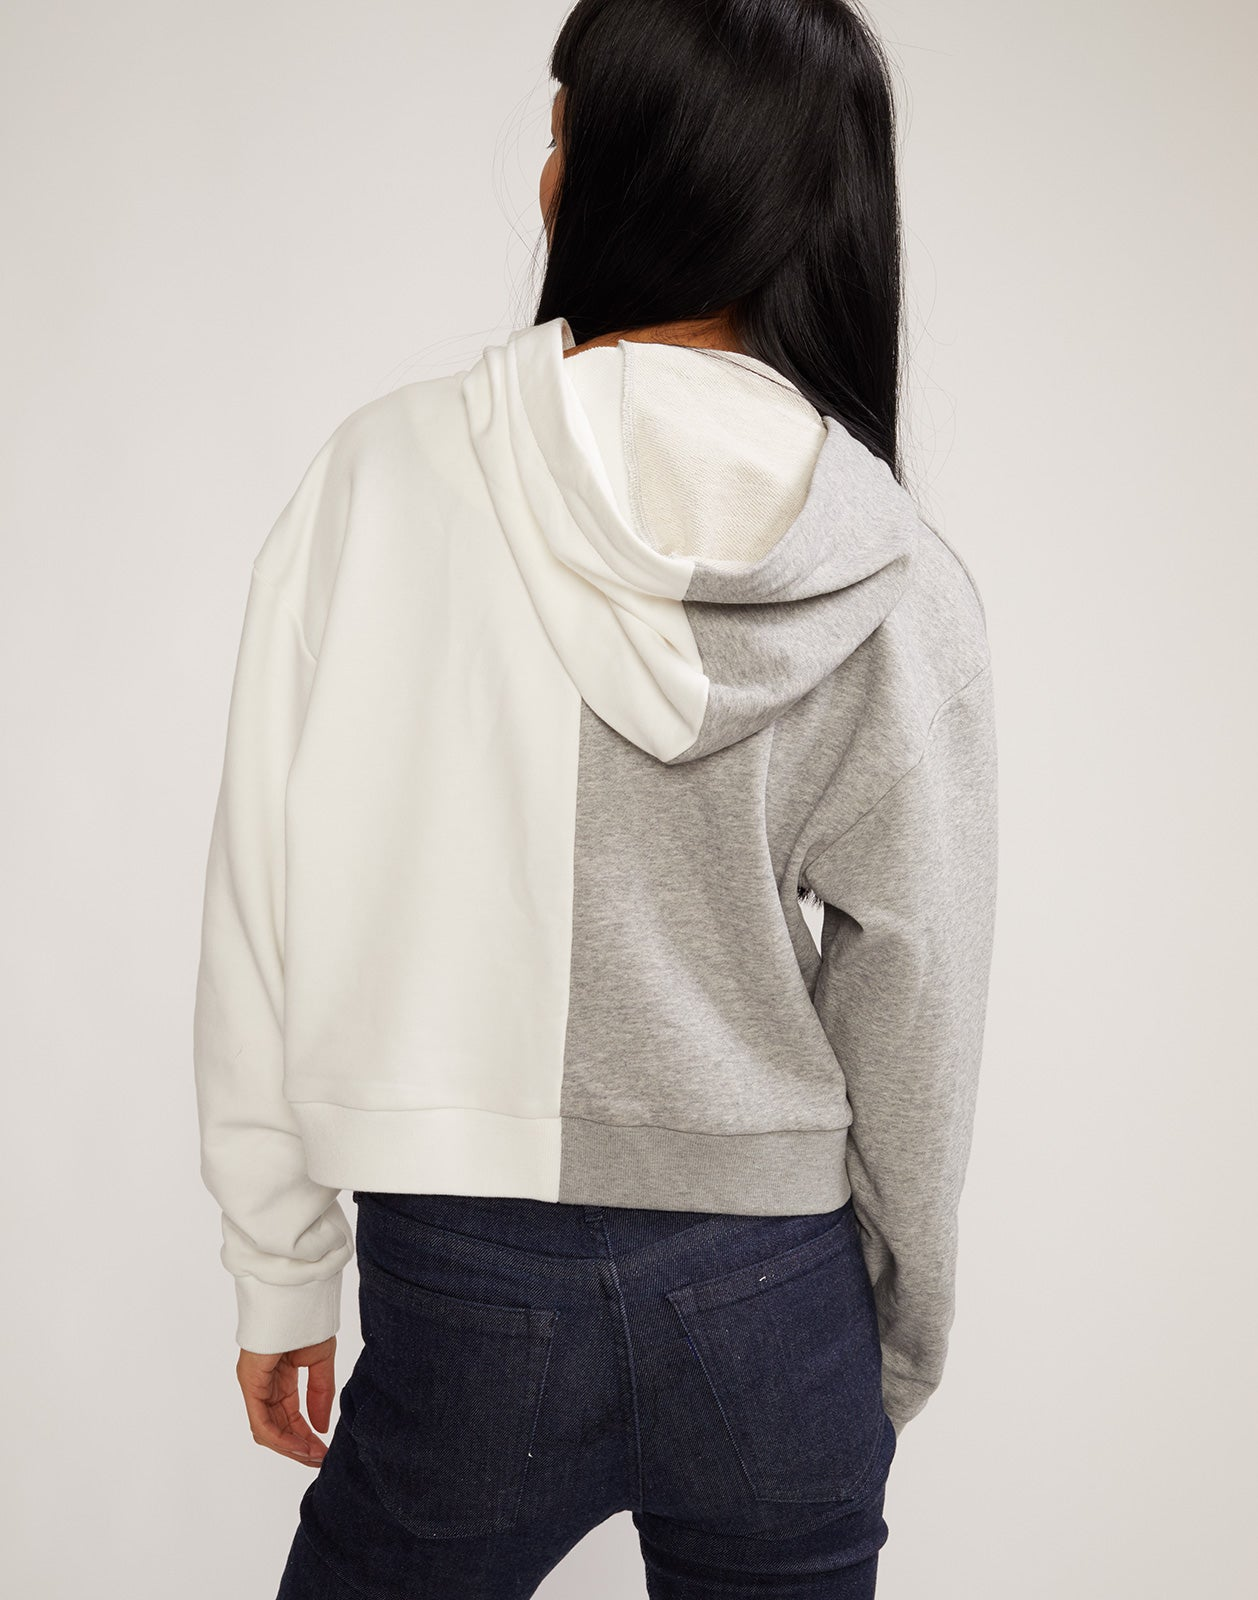 Back view of the Role Model Embroidered Hoodie Sweatshirt